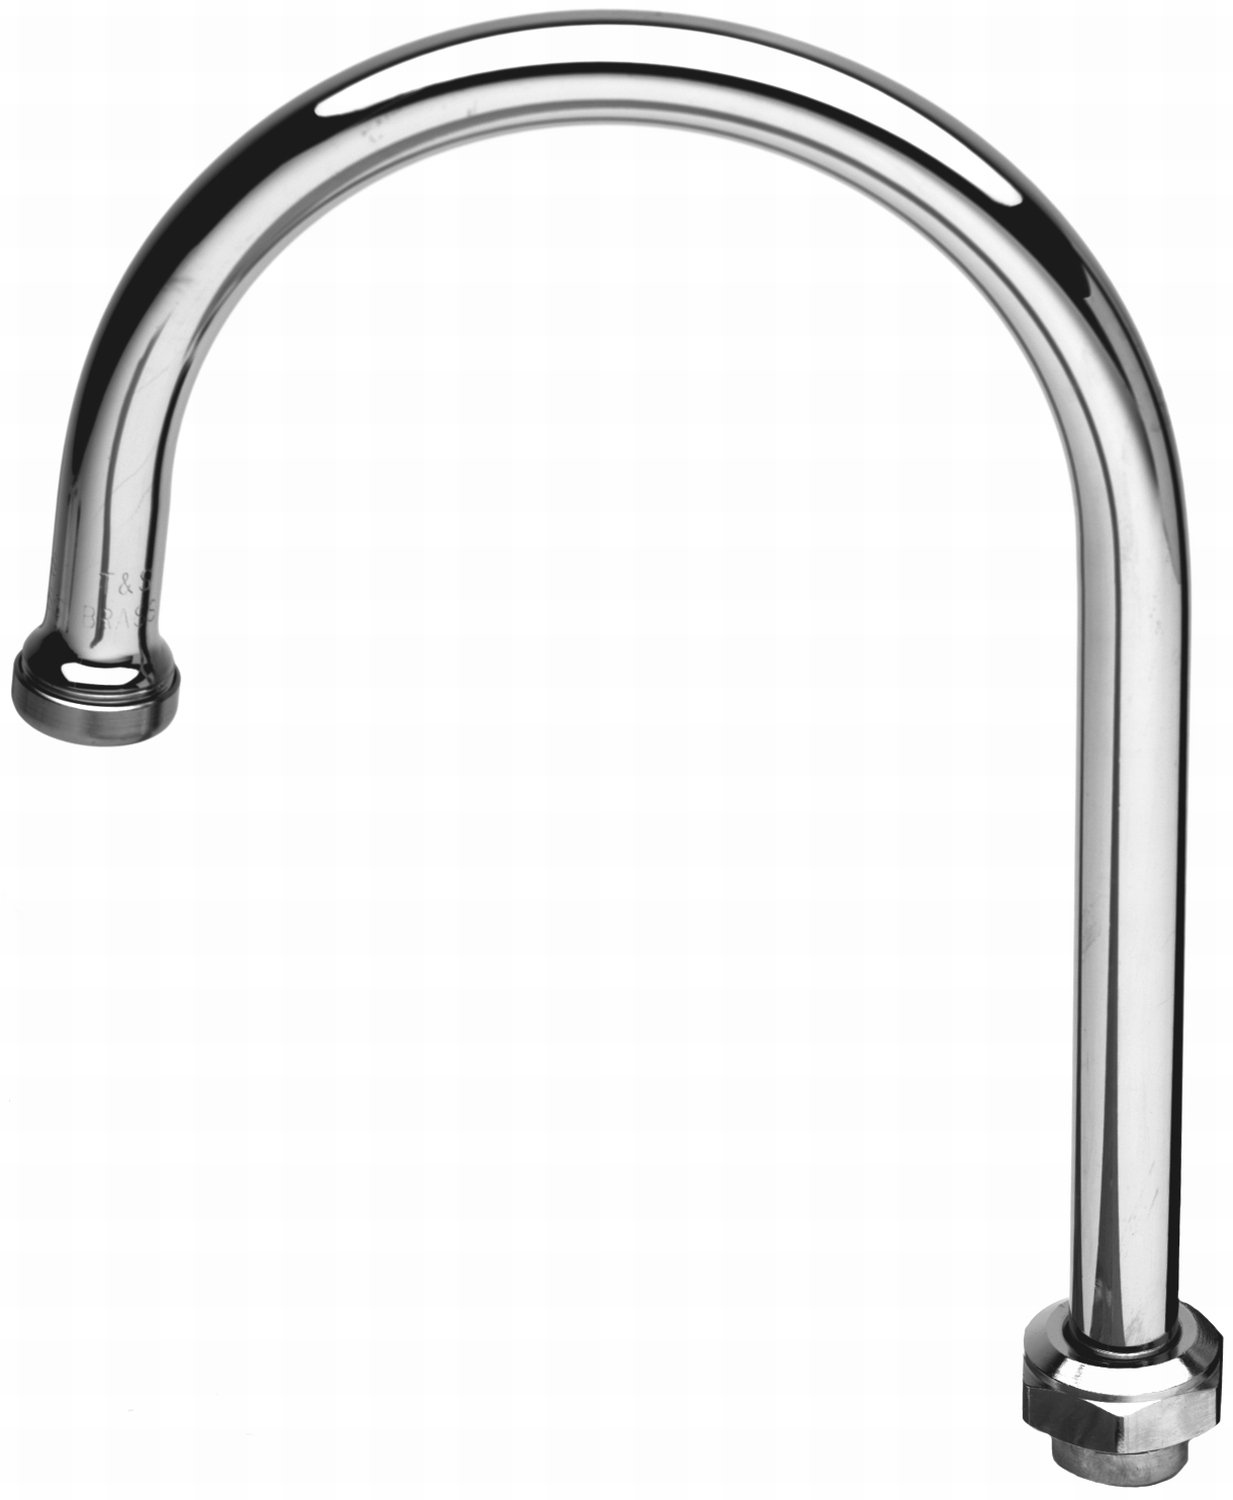 T&S Brass 016887-40 Swivel Gooseneck with 5-11/16-Inch Spread, 11-5/16-Inch Height, 7-1/4-Inch Clearance